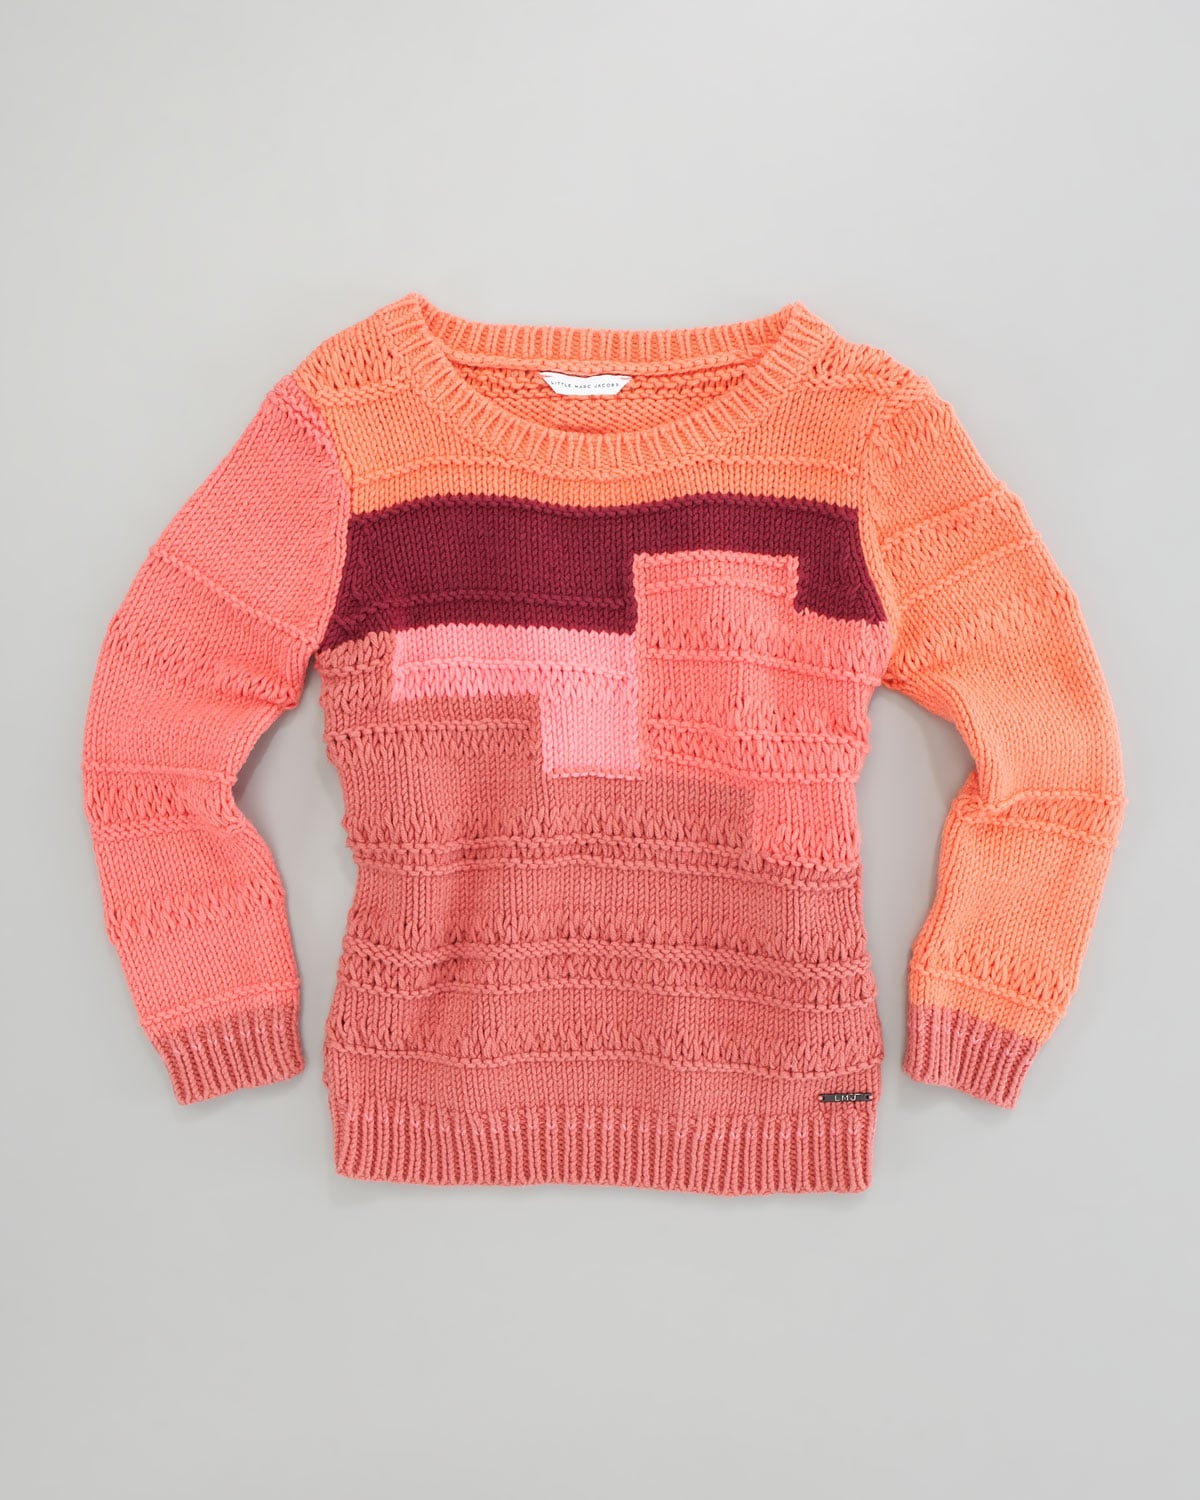 Little Marc Jacobs Colorblock Sweater ($121-$132)